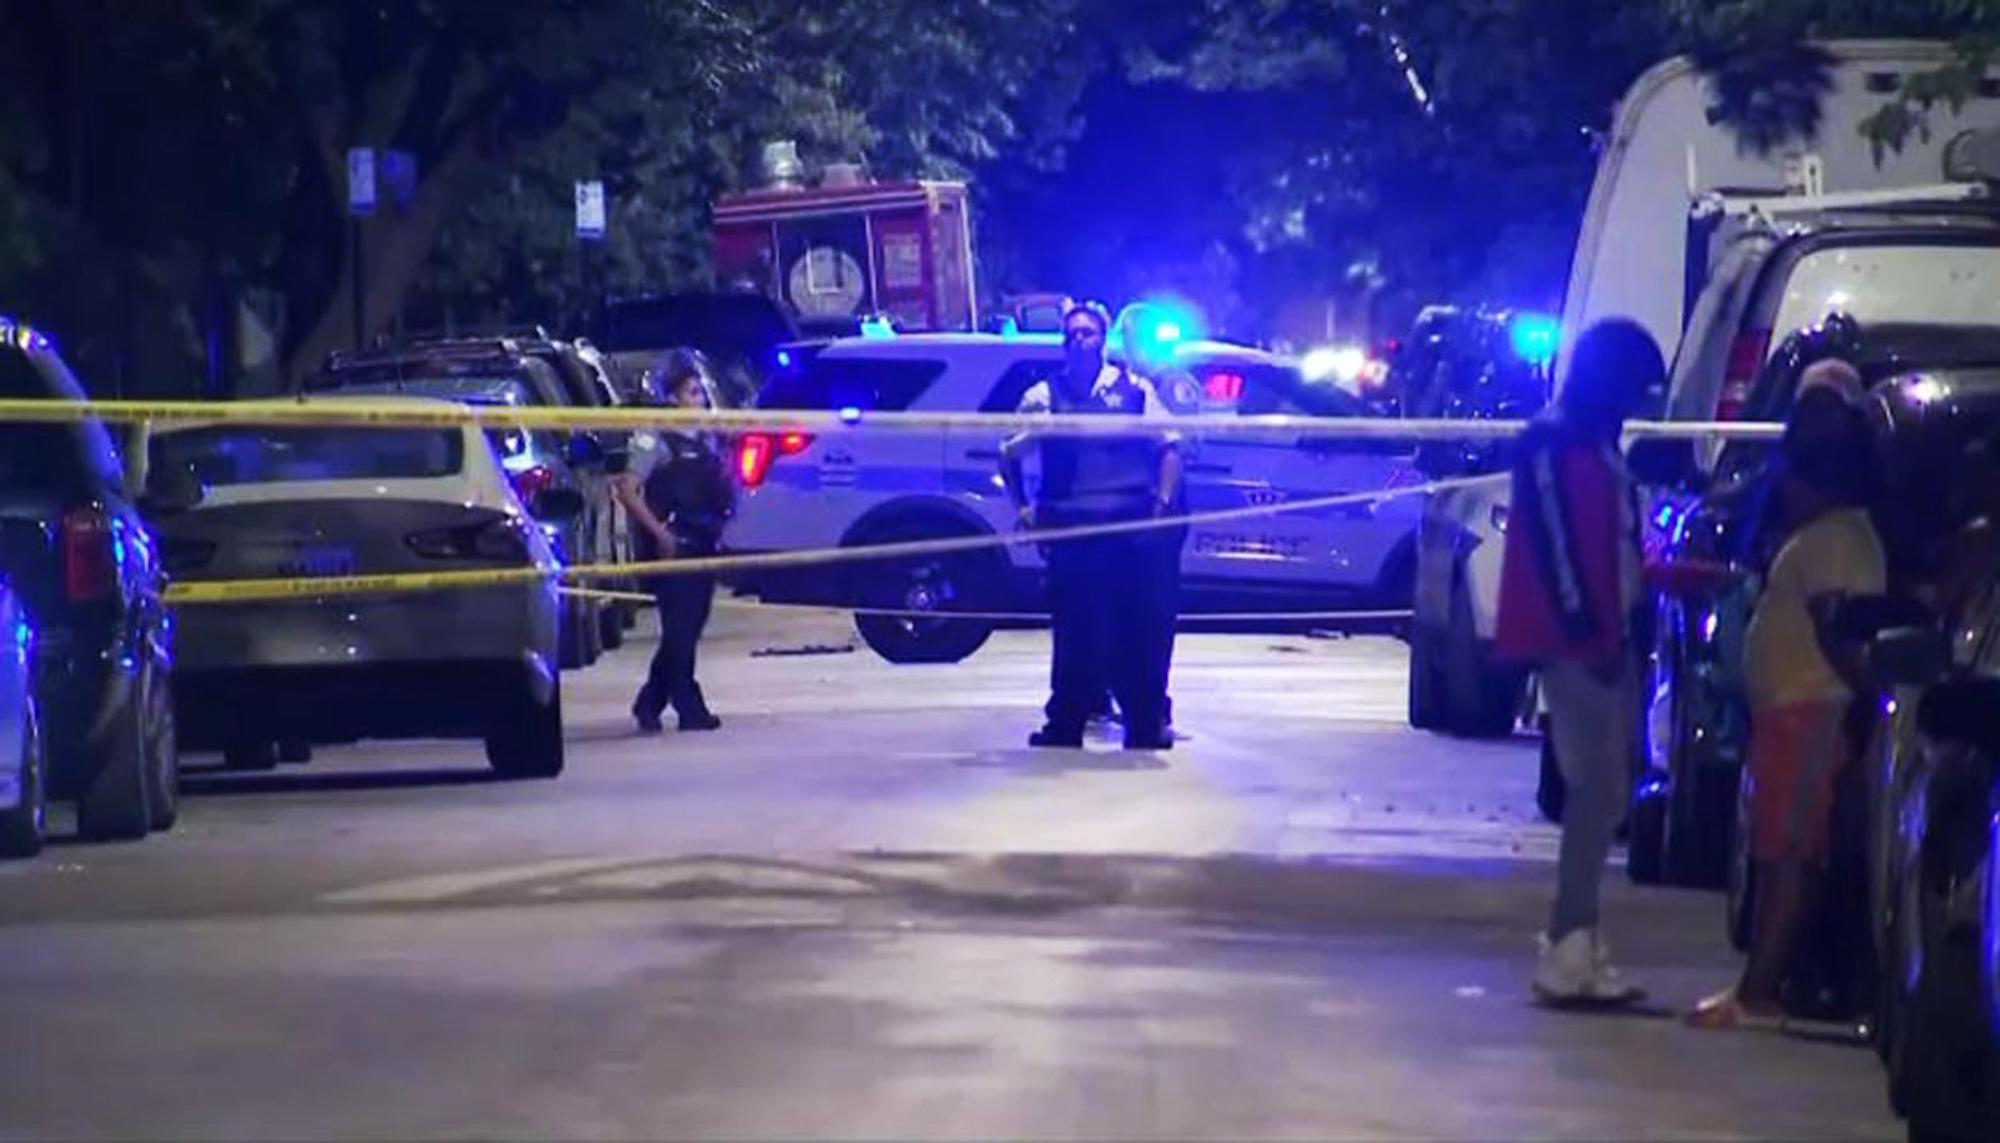 5 wounded in Chicago shooting hours after mass shooting kills 4